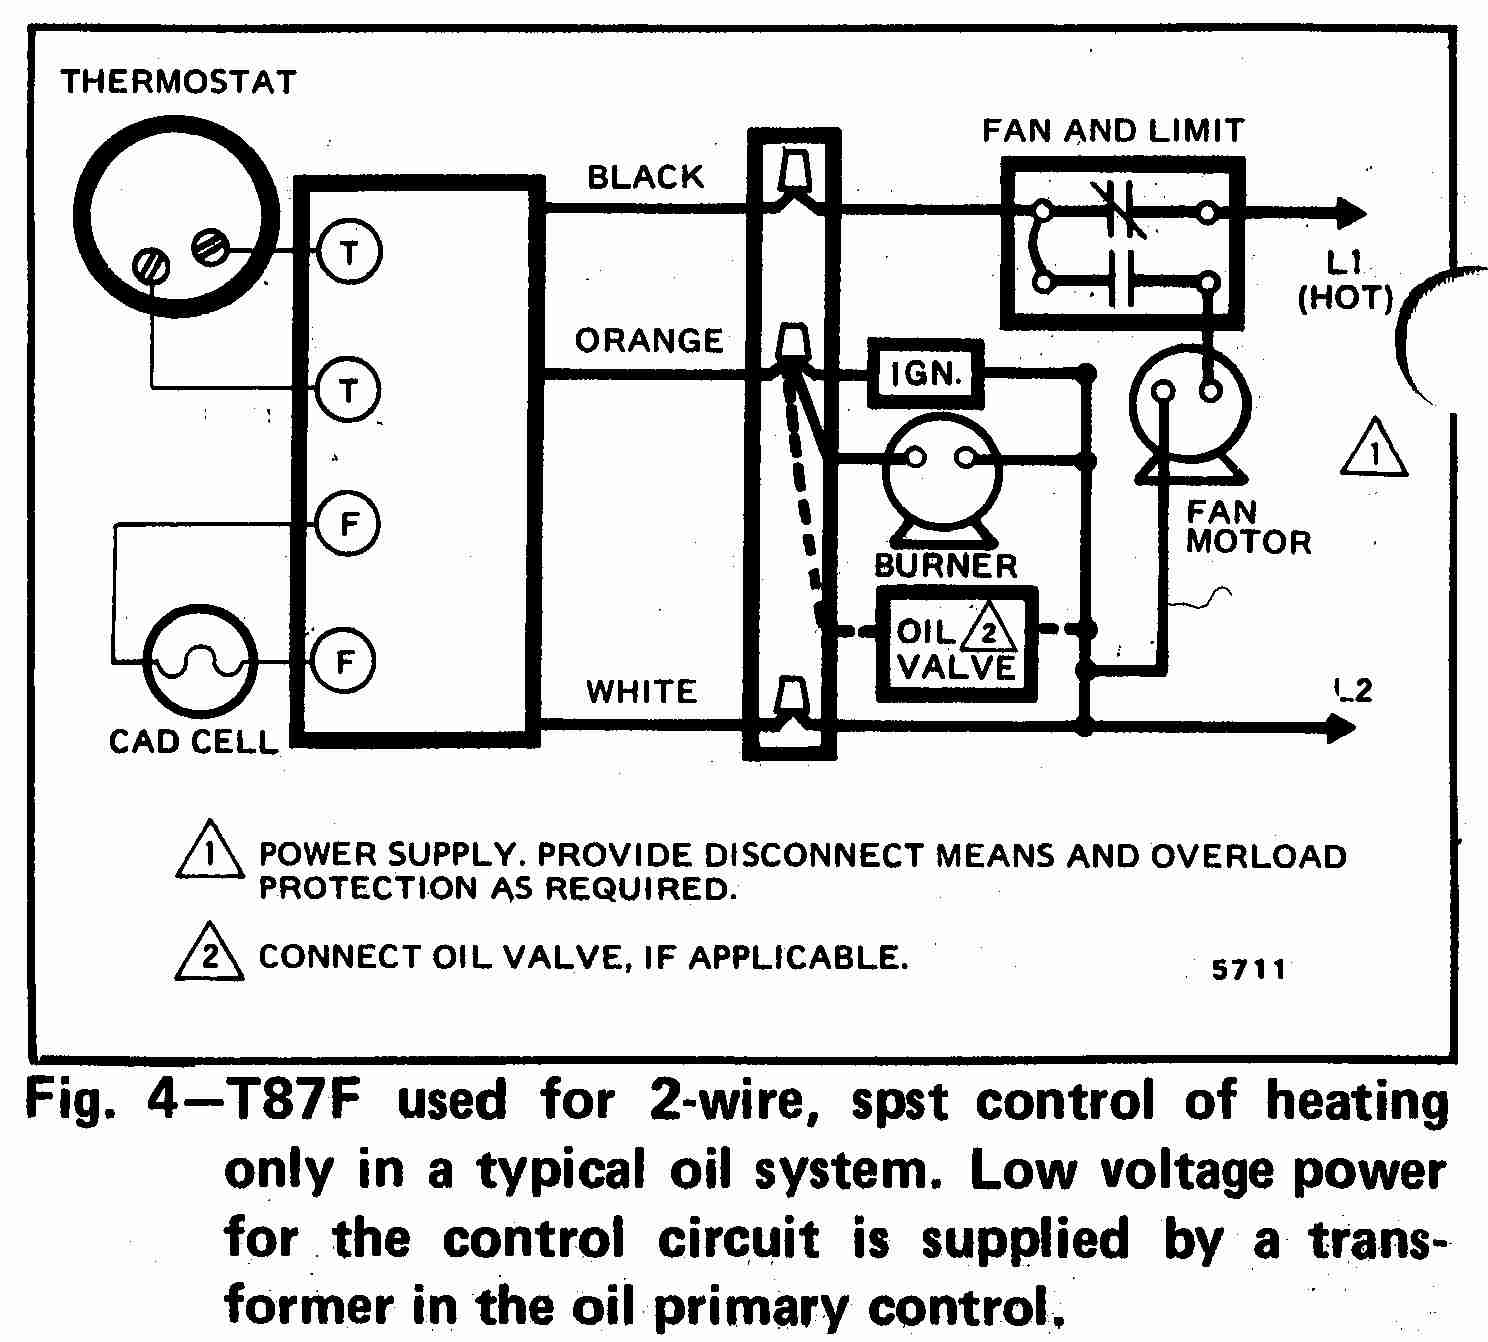 wood furnace thermostat wiring electrical work wiring diagram u2022 rh aglabs co